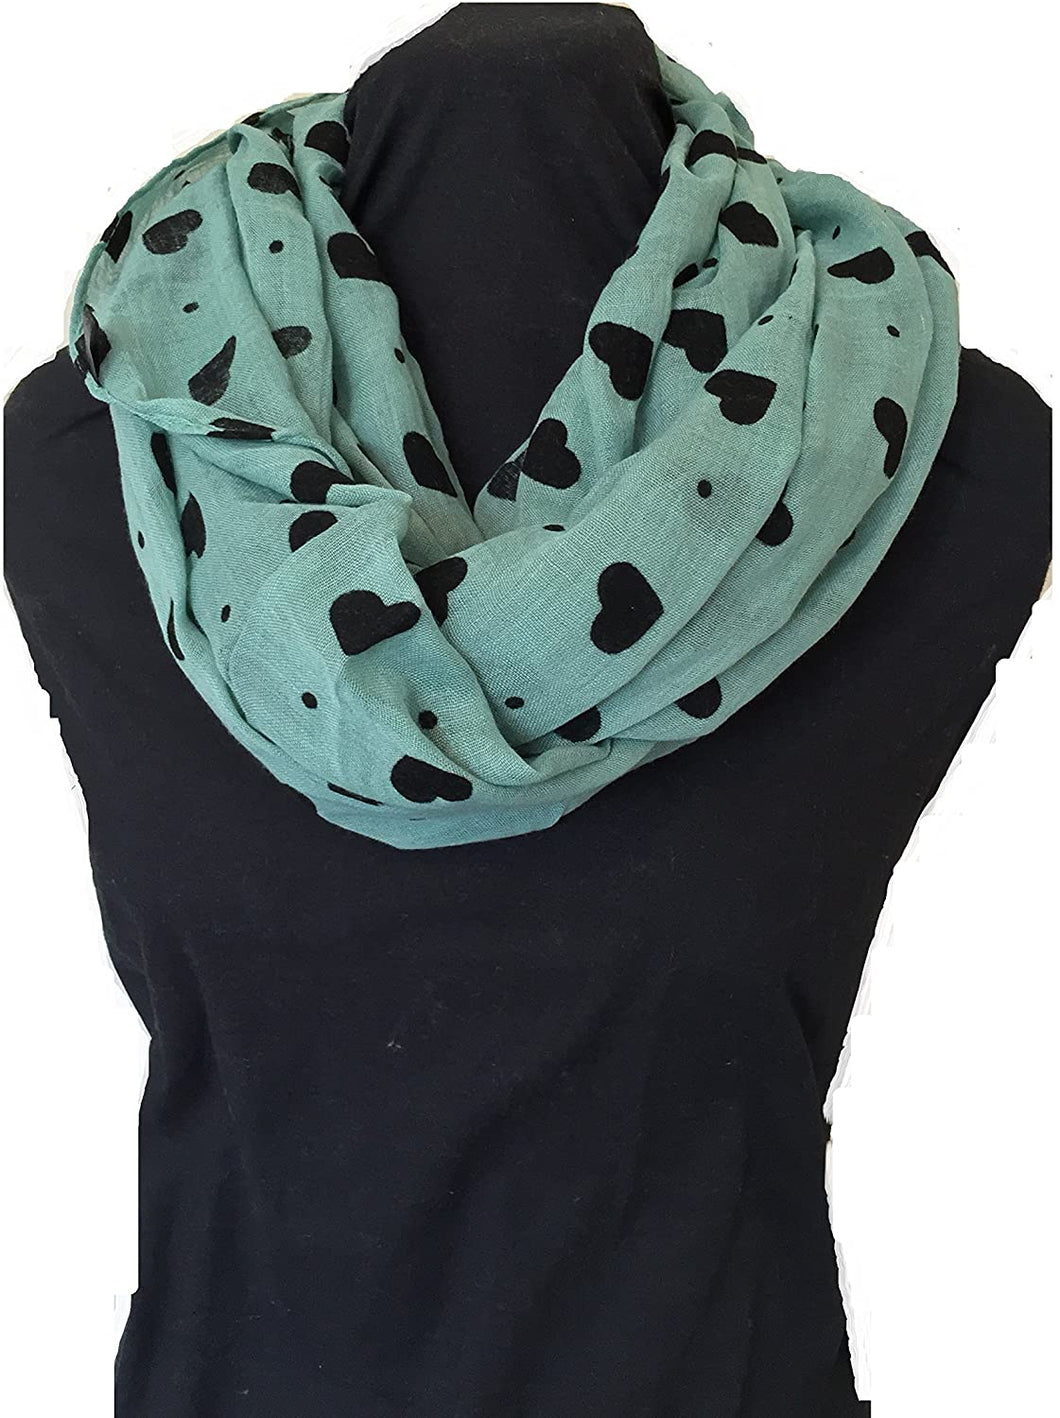 Pamper Yourself Now Green with Black Embossed Love Hearts and dot Design Snood